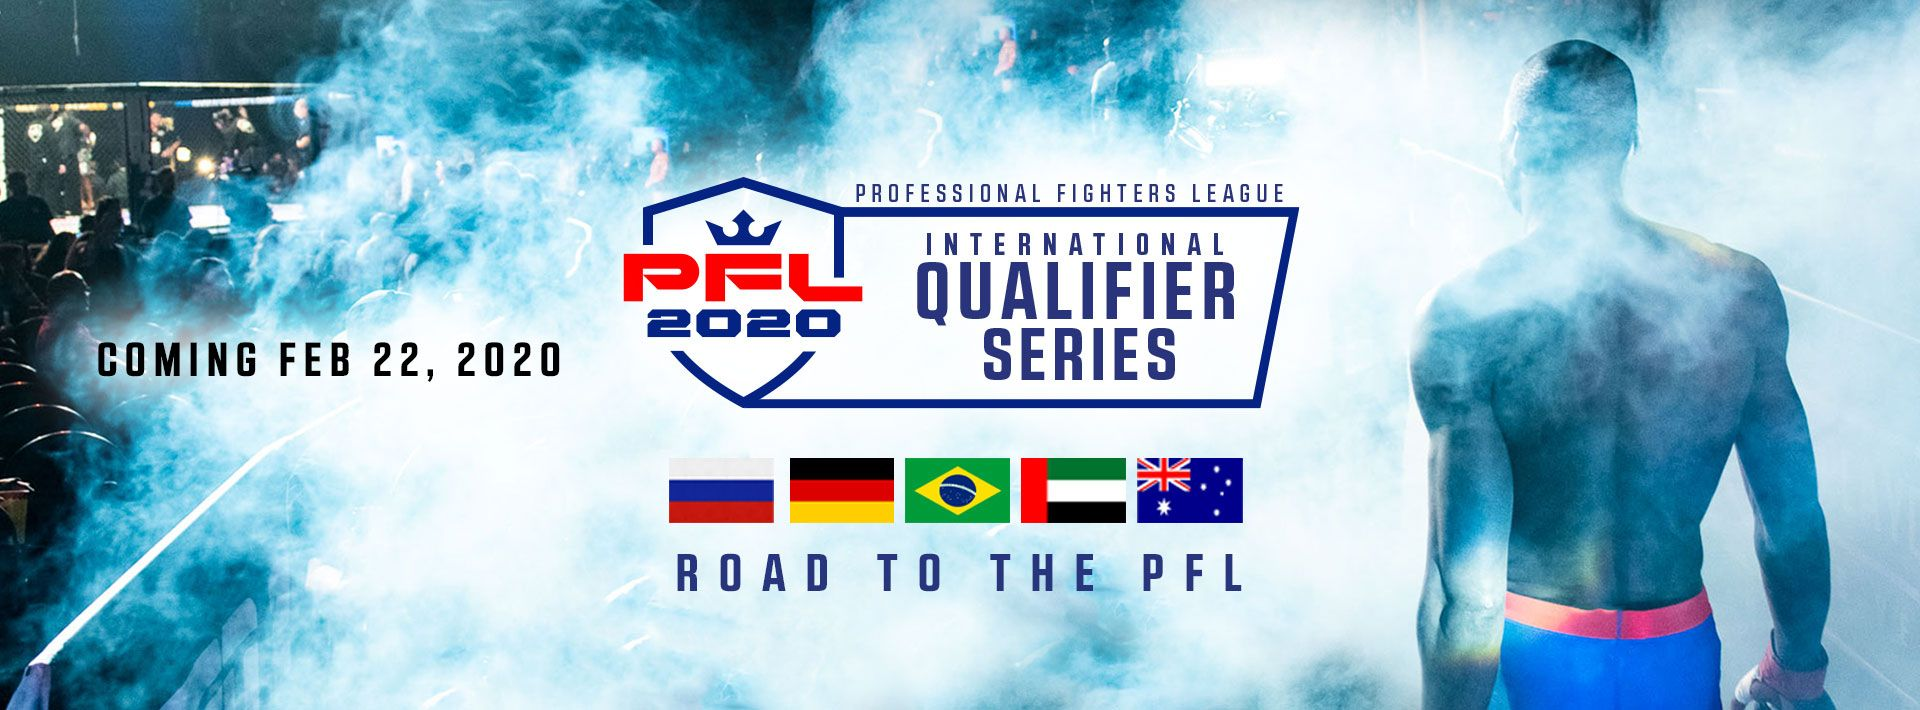 Pfl International Qualifier Series Awarding Pfl Contracts To The